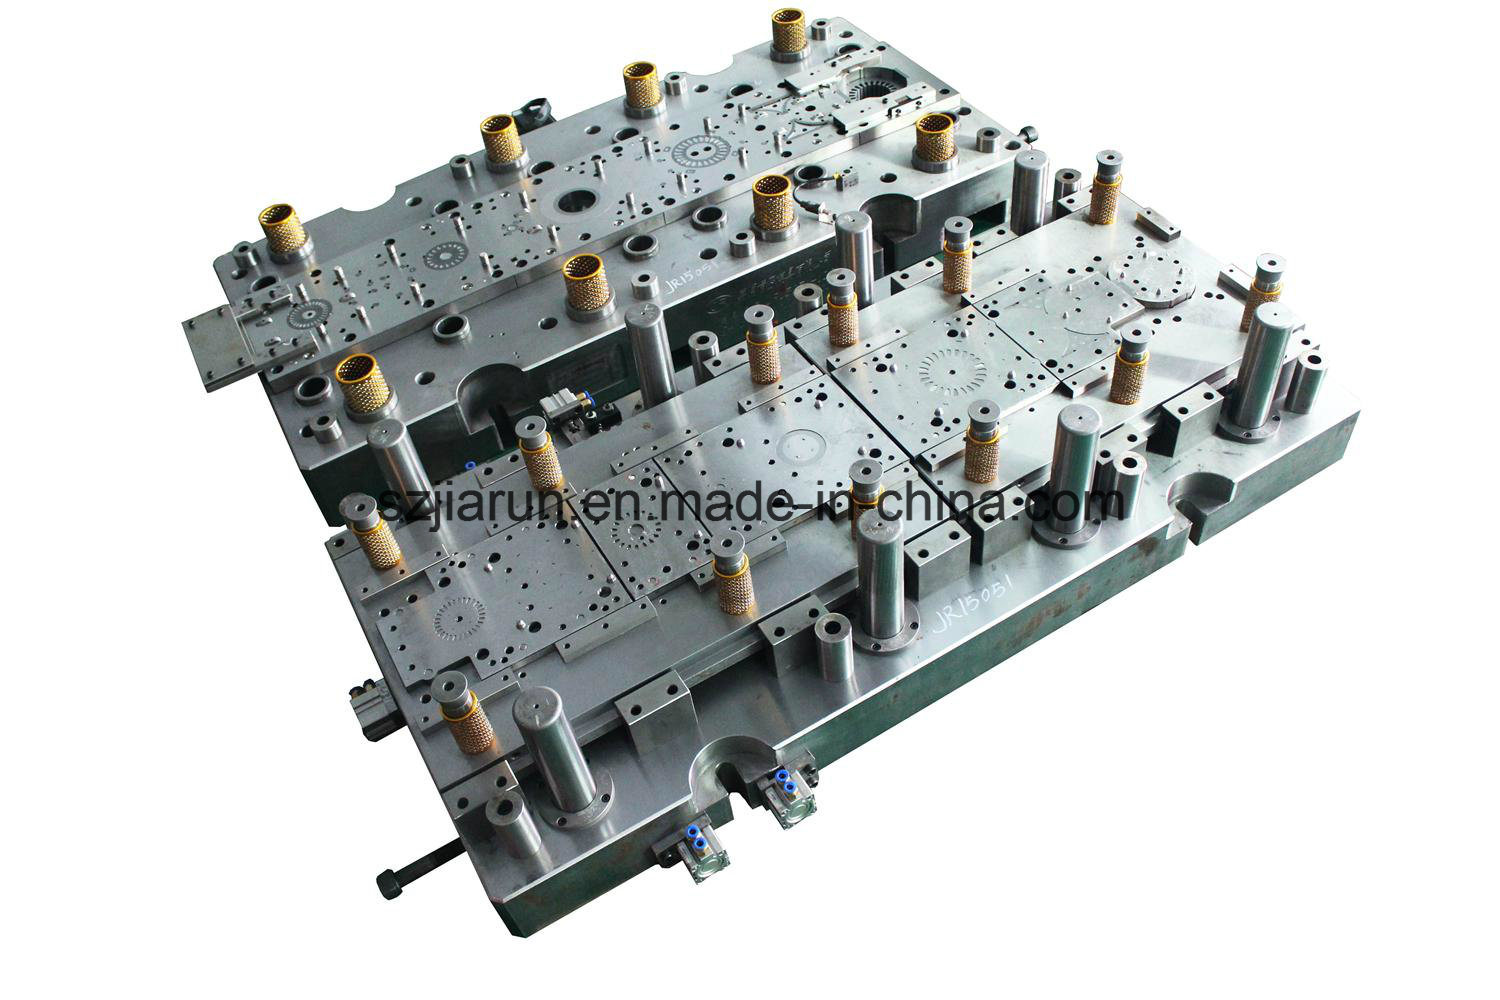 The Best Tool Maker for Stamping Mould